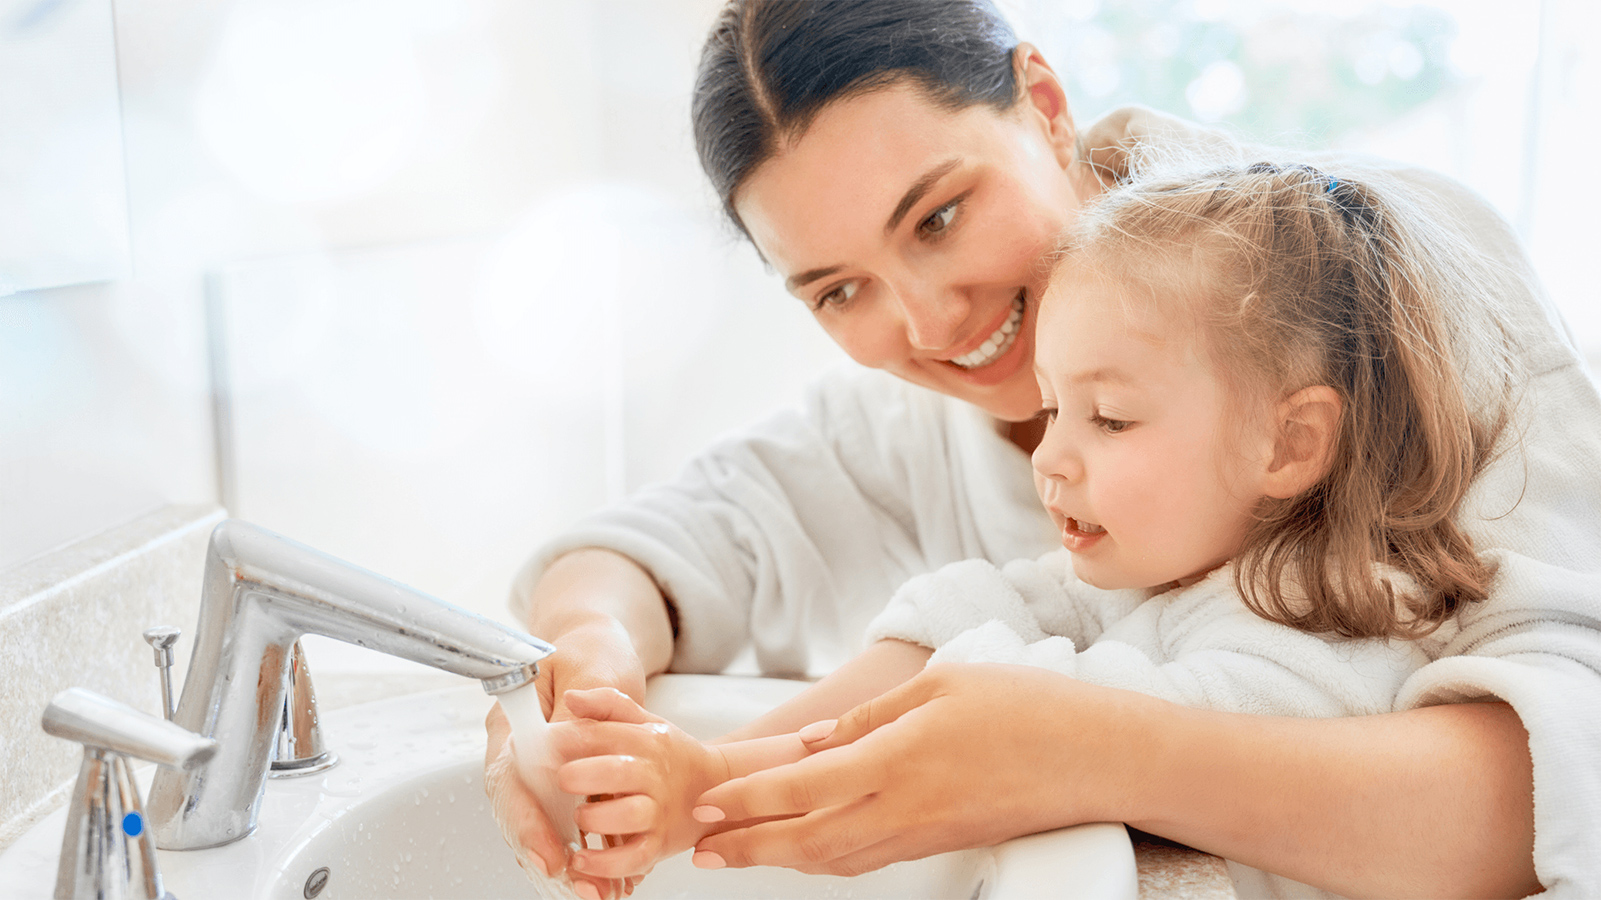 Mother helping her daughter wash her hands in the sink.